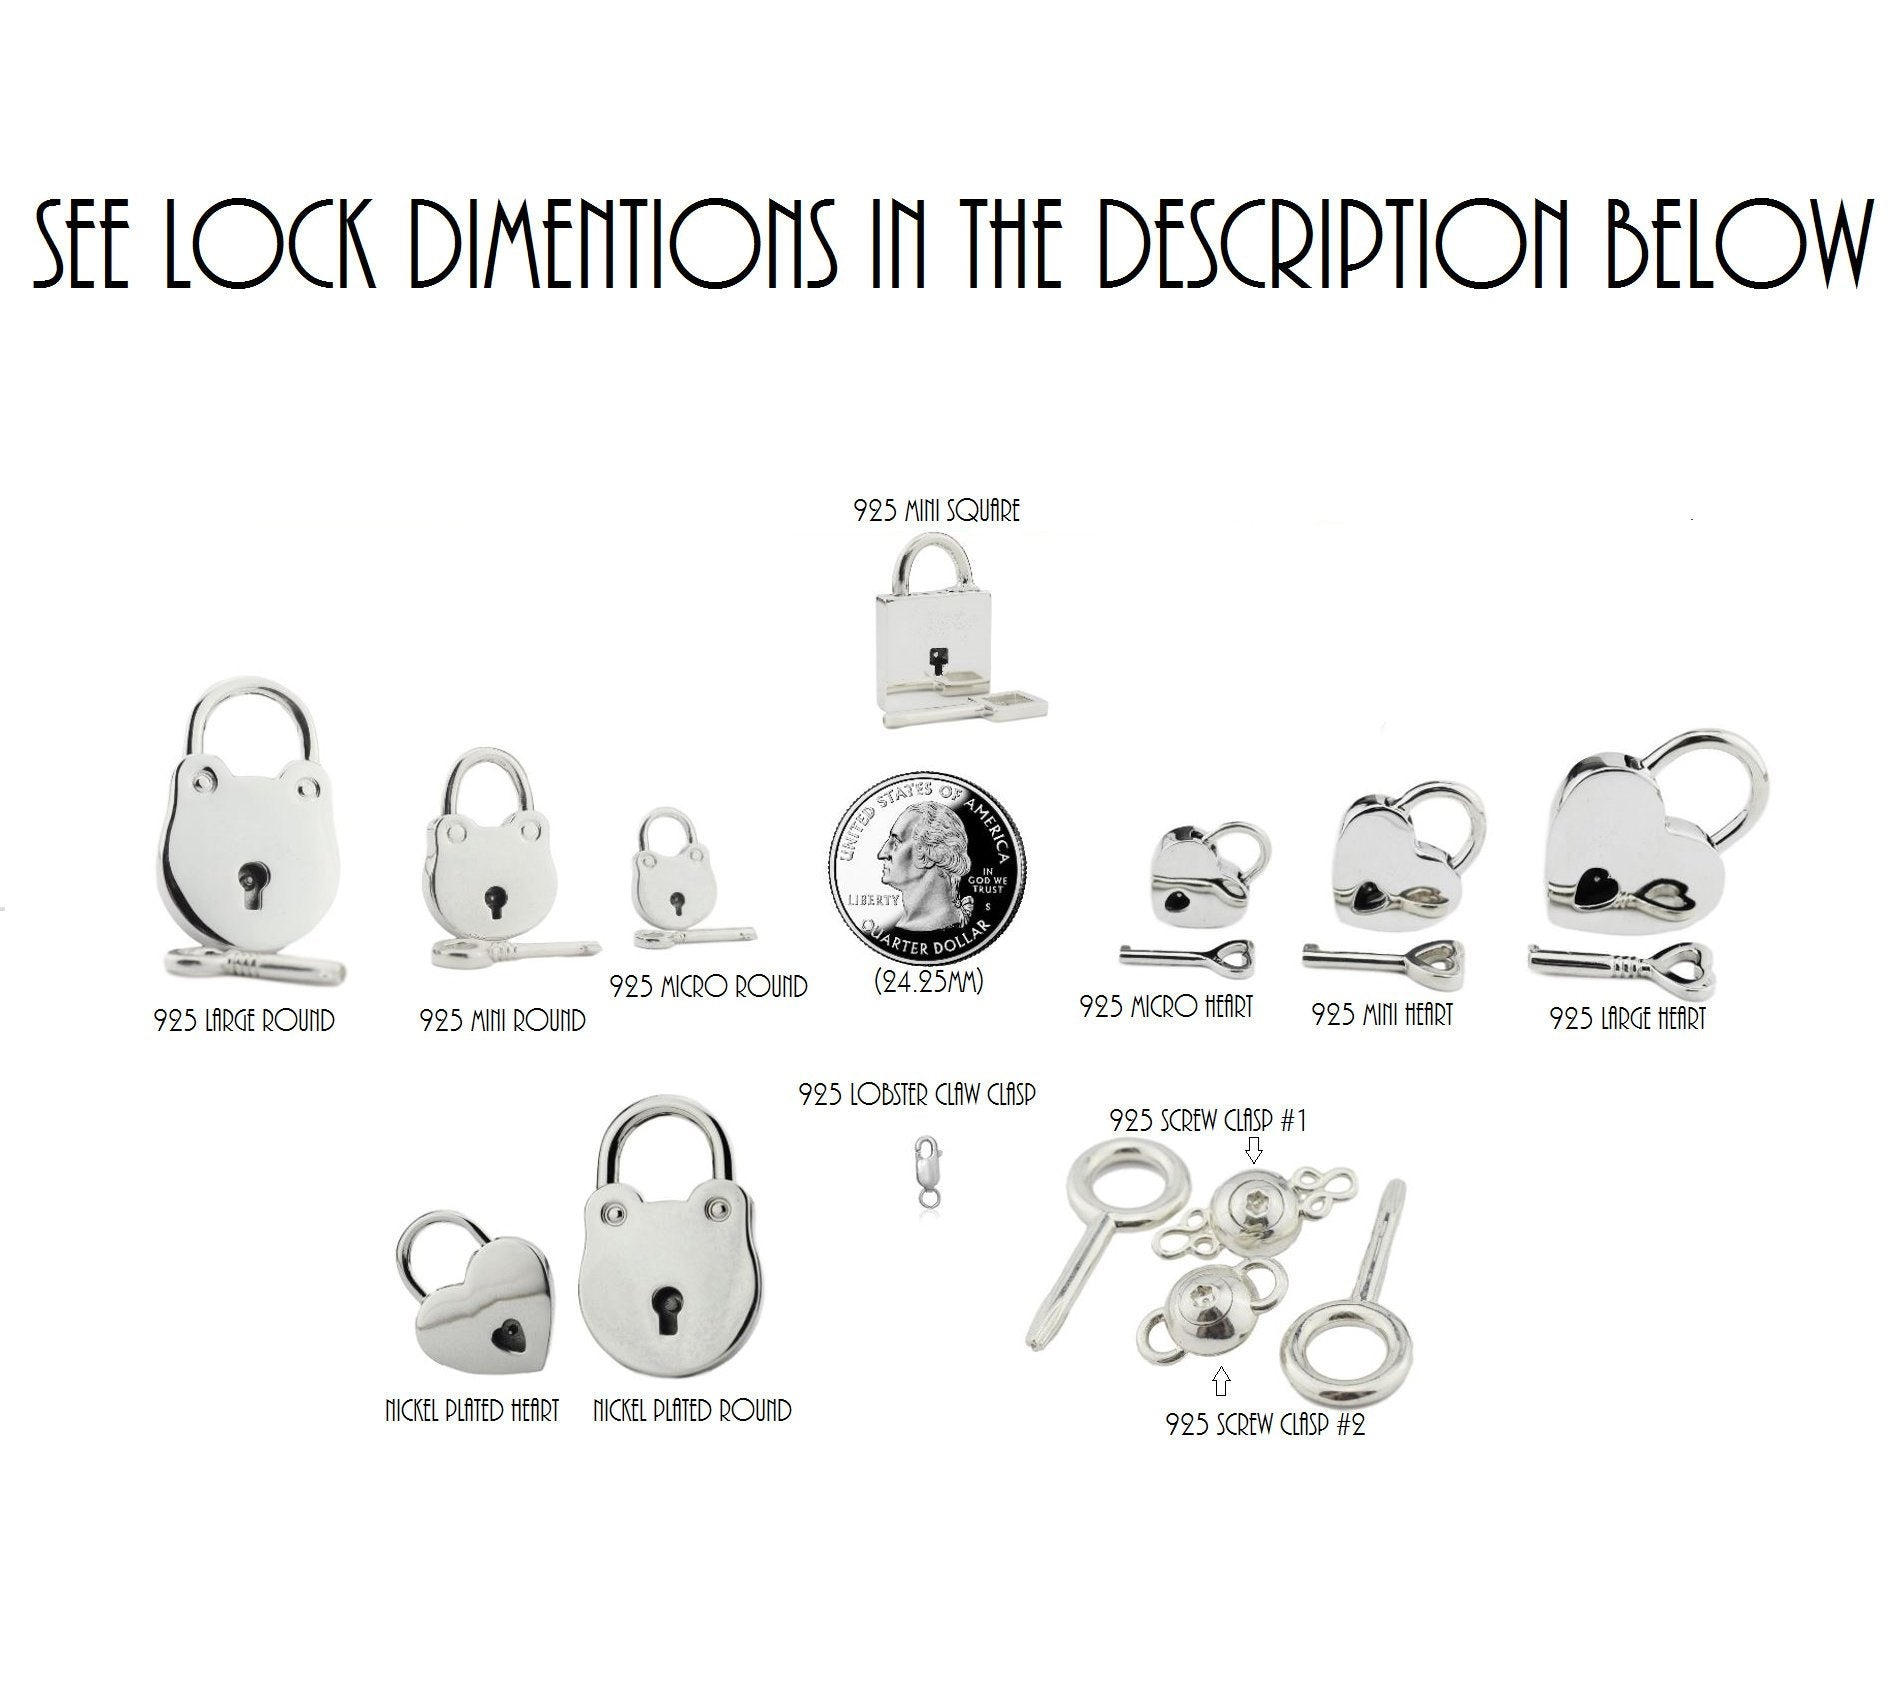 Highest Quality Day Collars in the World! 925 Sterling Silver Hypoallergenic Locking, lock, padlock BDSM Cuff Bondage Sub Kink Slave Submissive ToBeHis Engraving